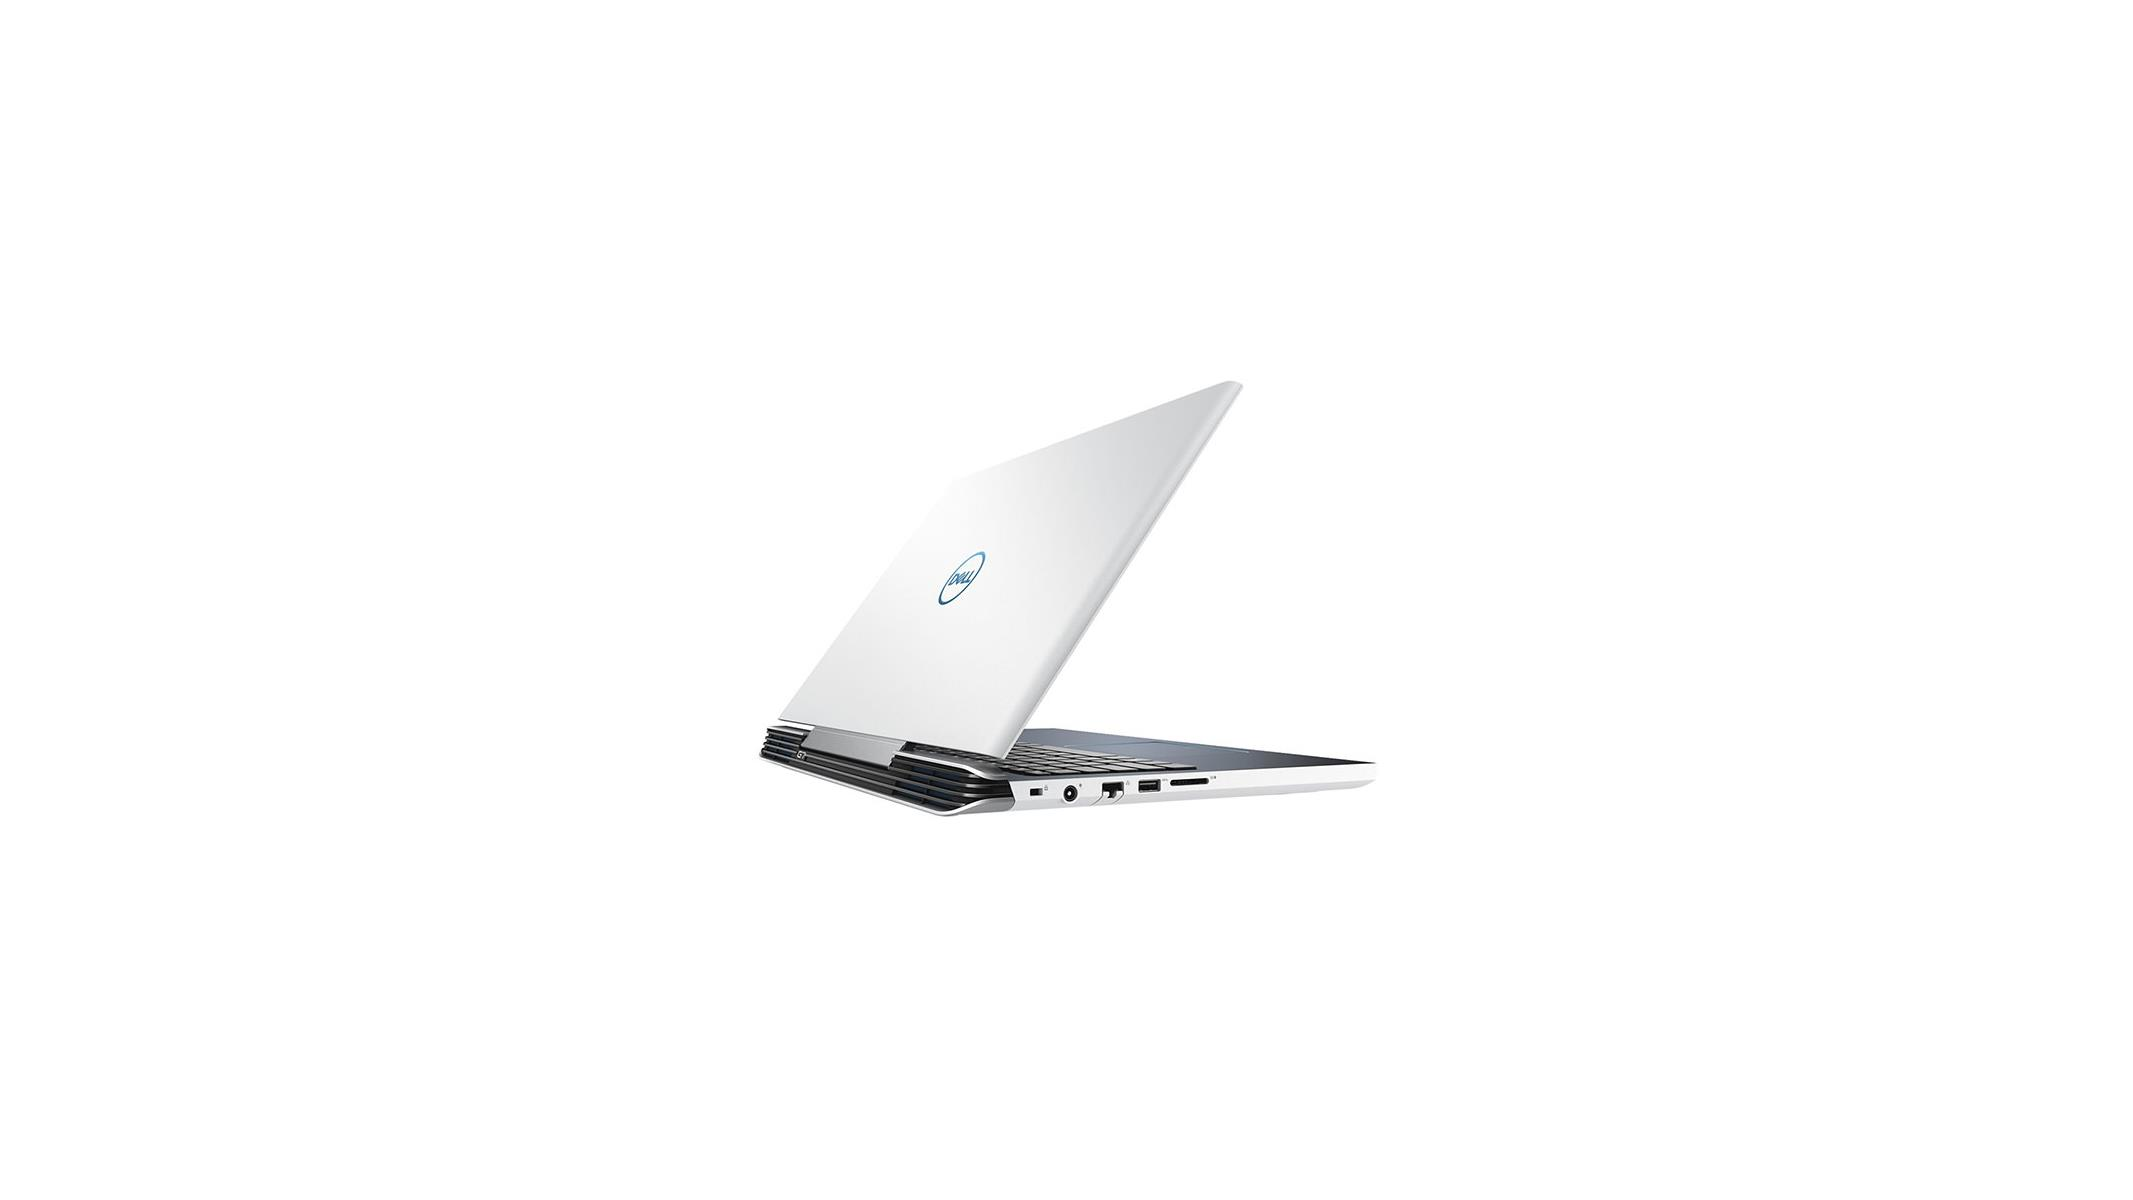 Dell G7 15 Gaming Laptop Review: Affordable, Stylish And